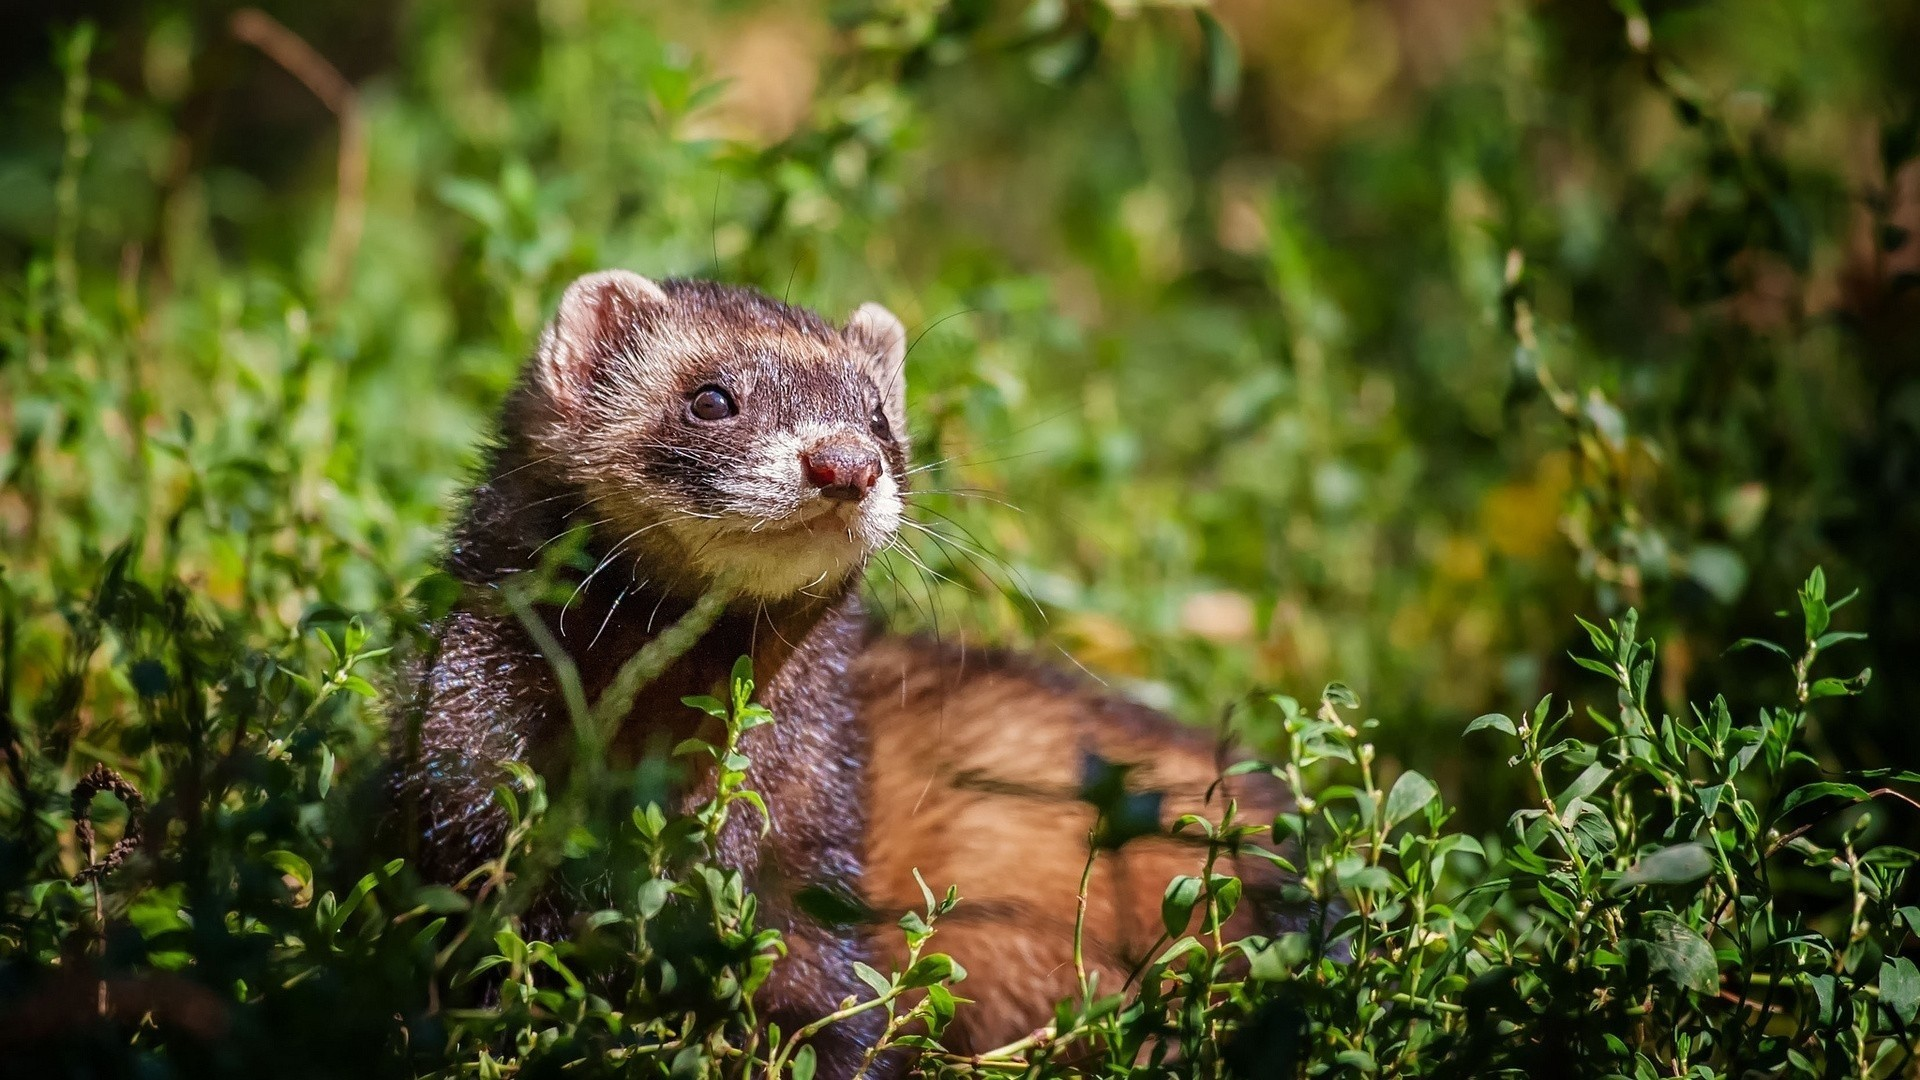 Ferret Wallpaper and Background